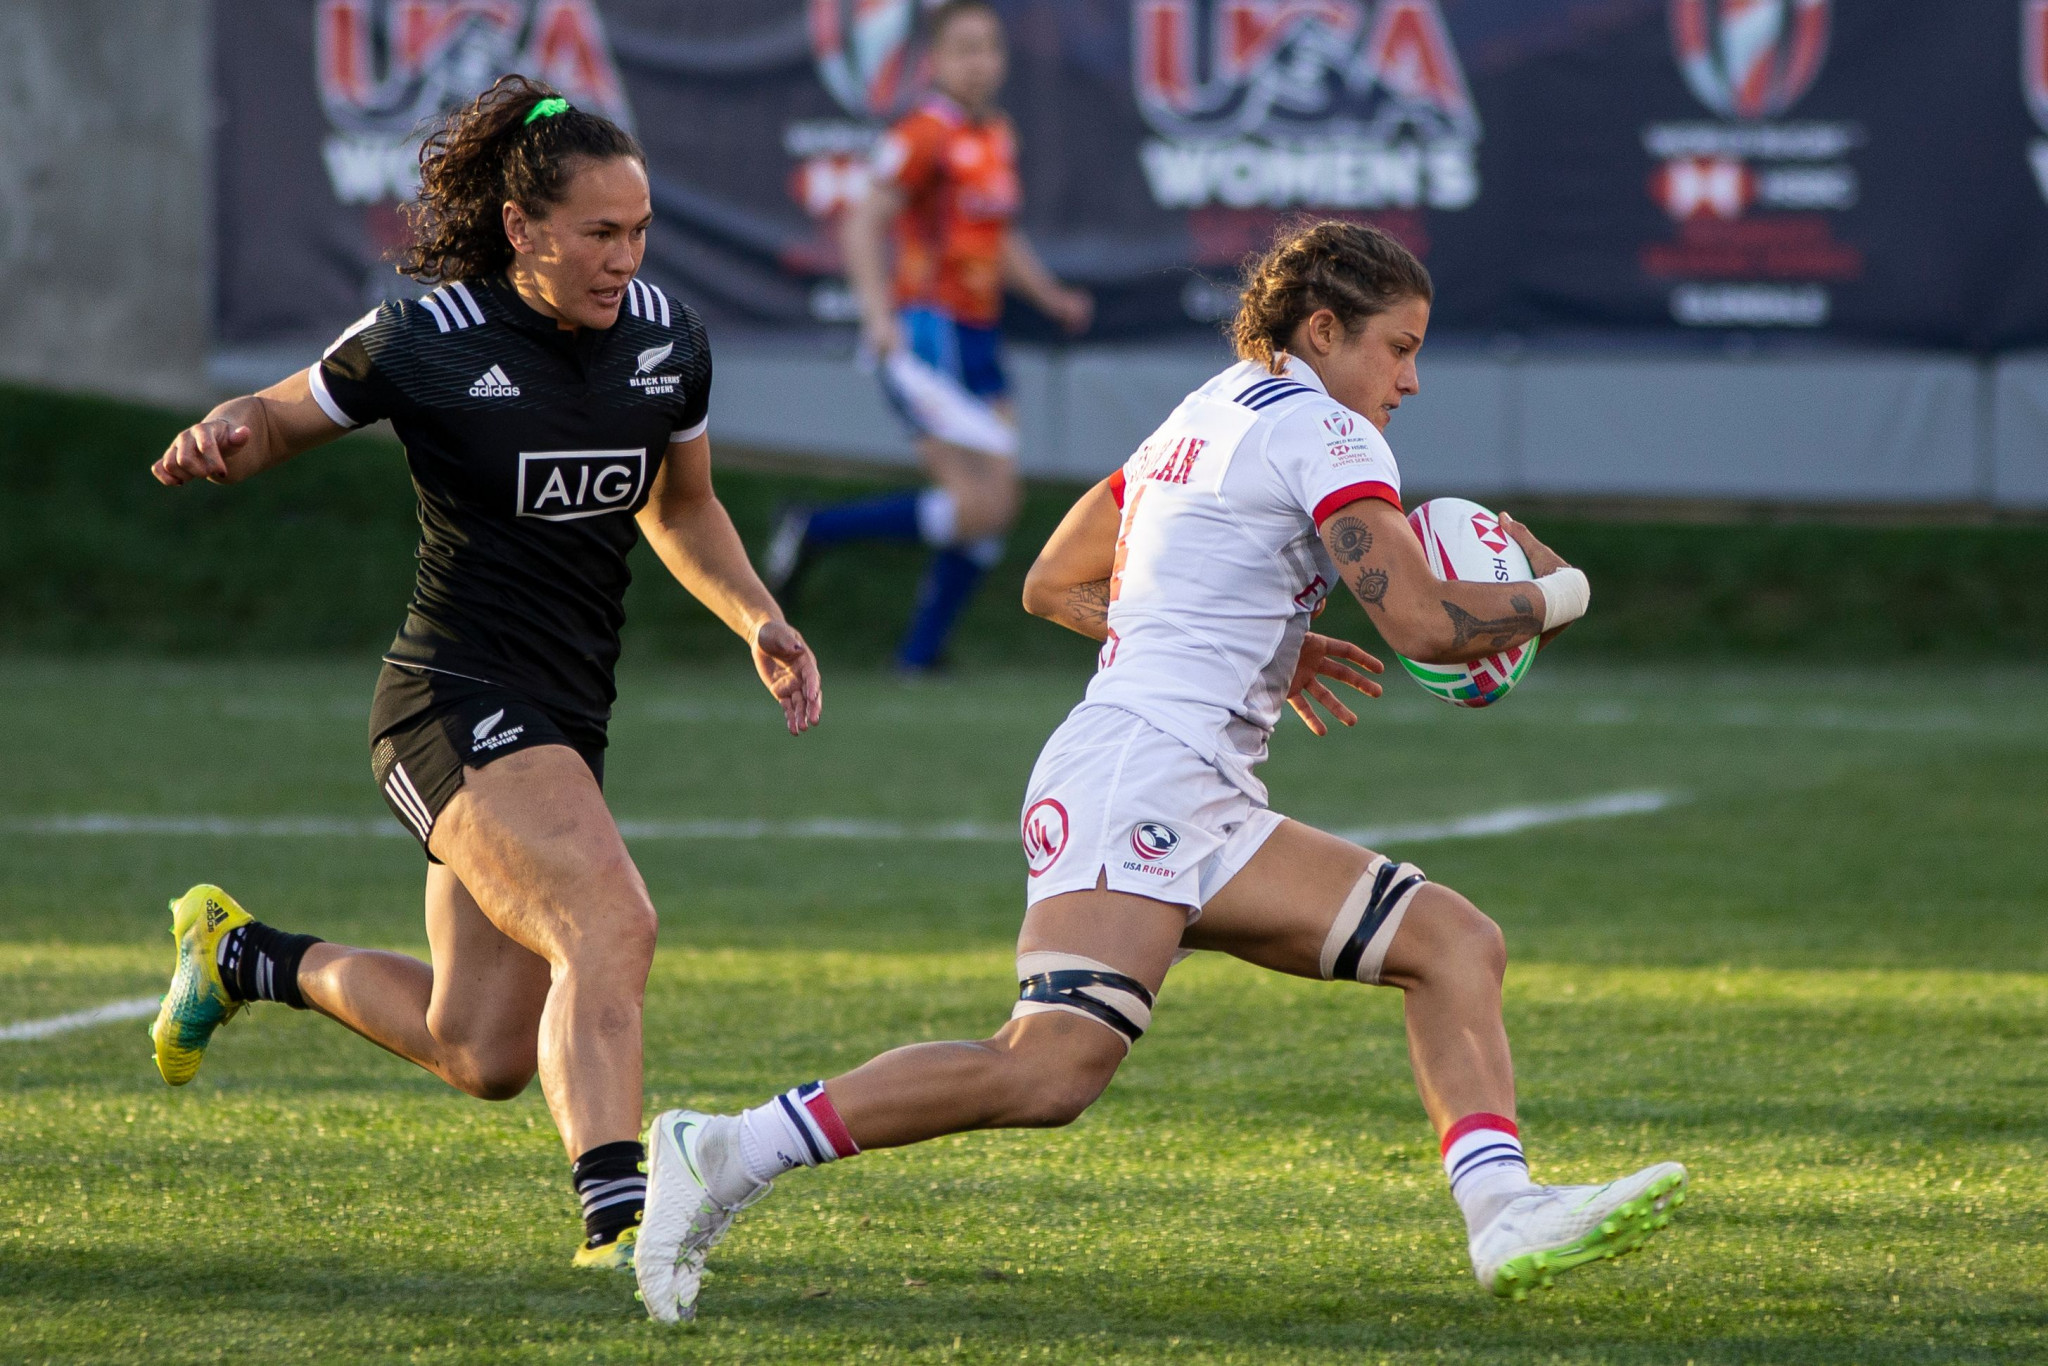 New Zealand beat the United States 33-7 to win the World Rugby Women's Sevens Series in Denver ©Getty Images